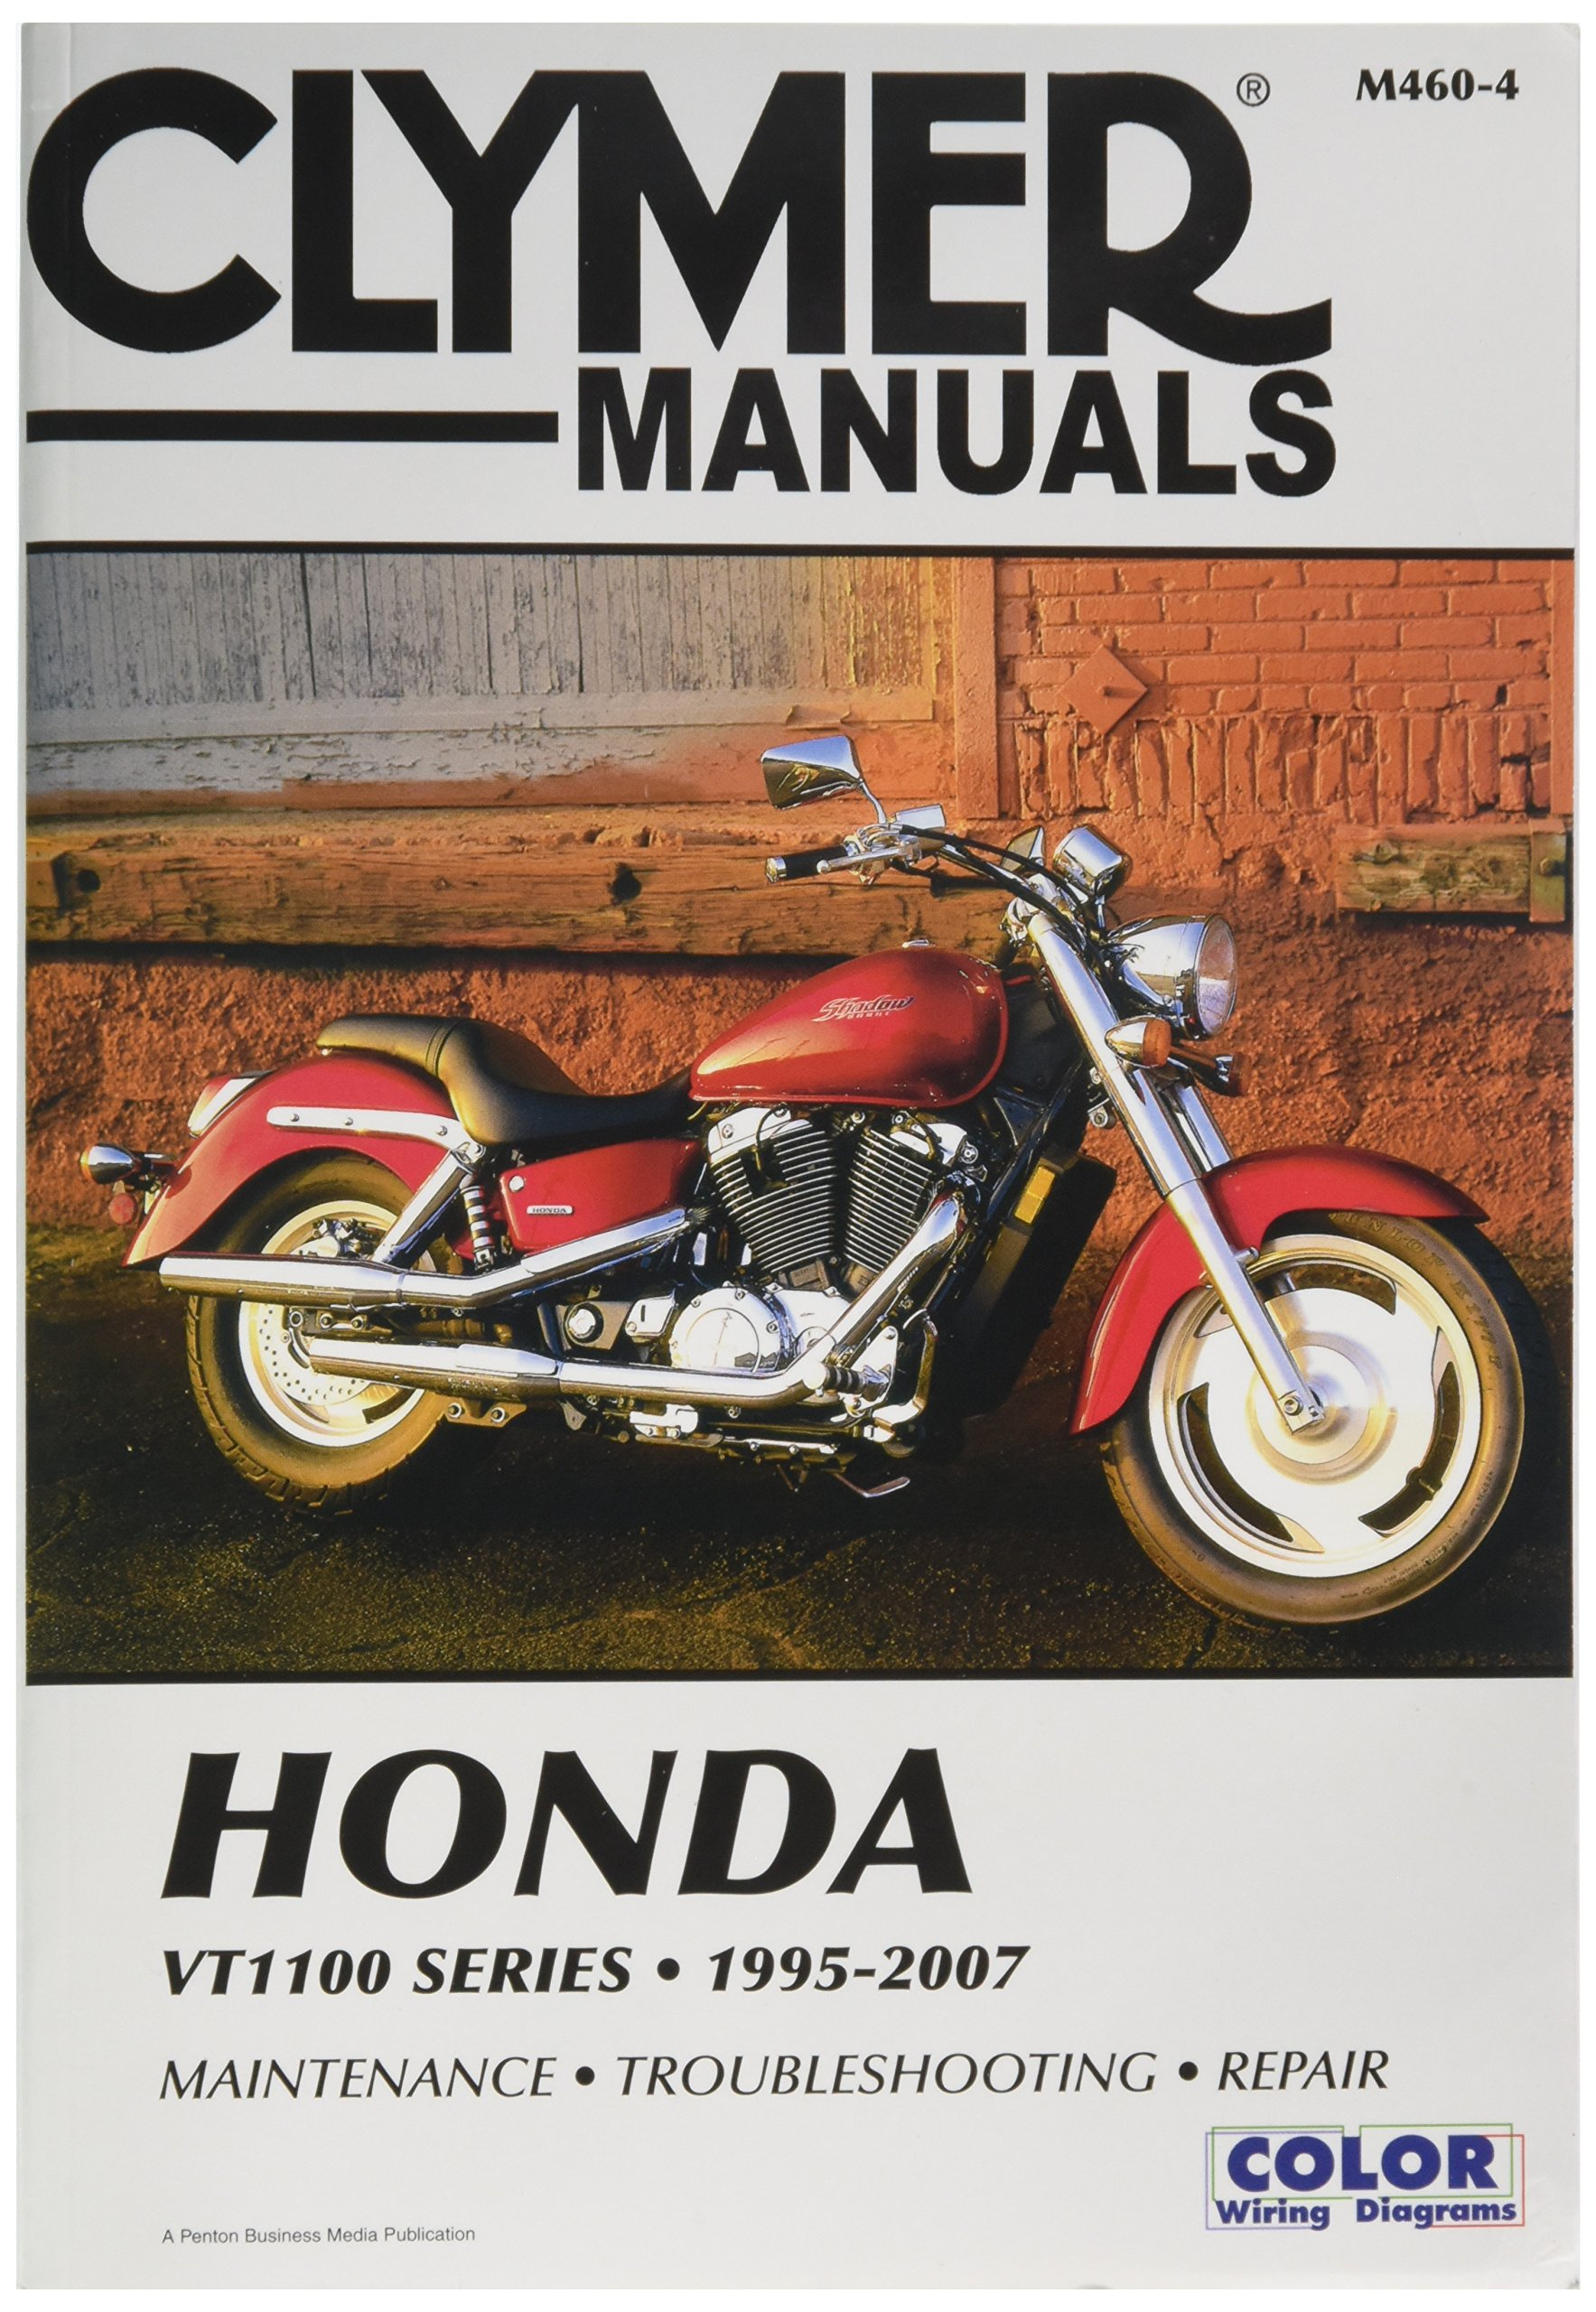 Amazon.com: Clymer Repair Manual for Honda VT1100 VT-1100 Series 95-07:  Automotive